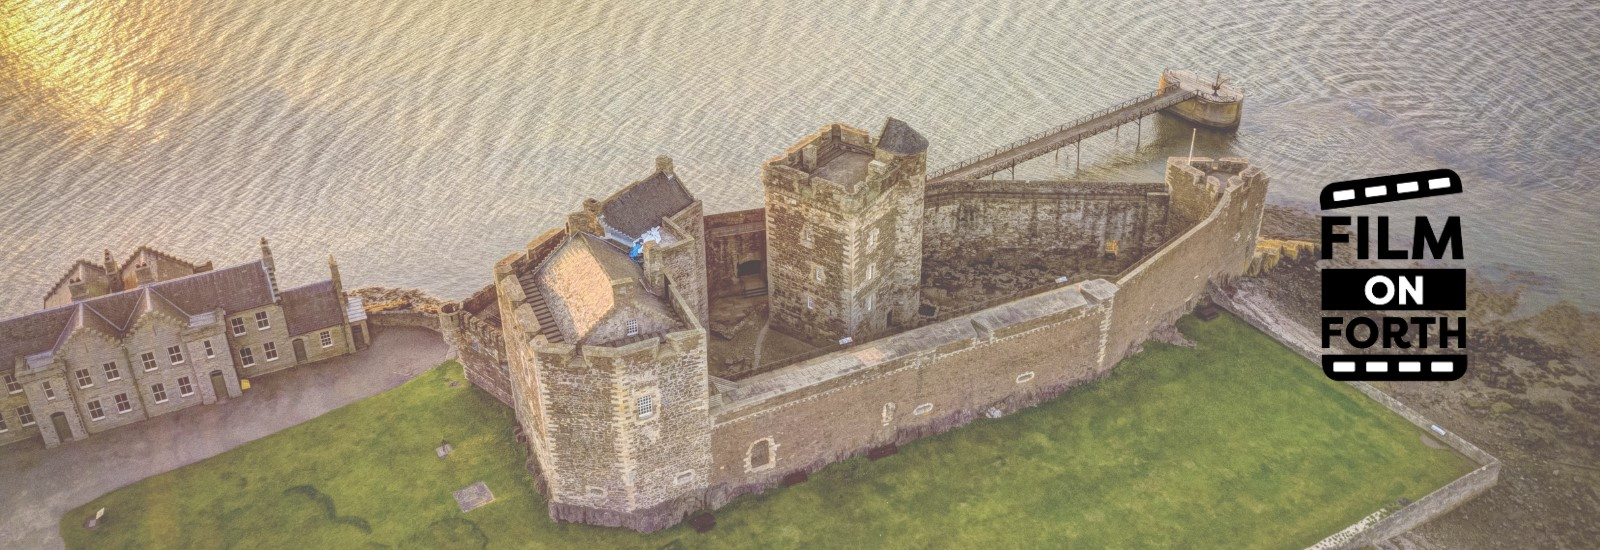 Film on Forth Blackness Castle